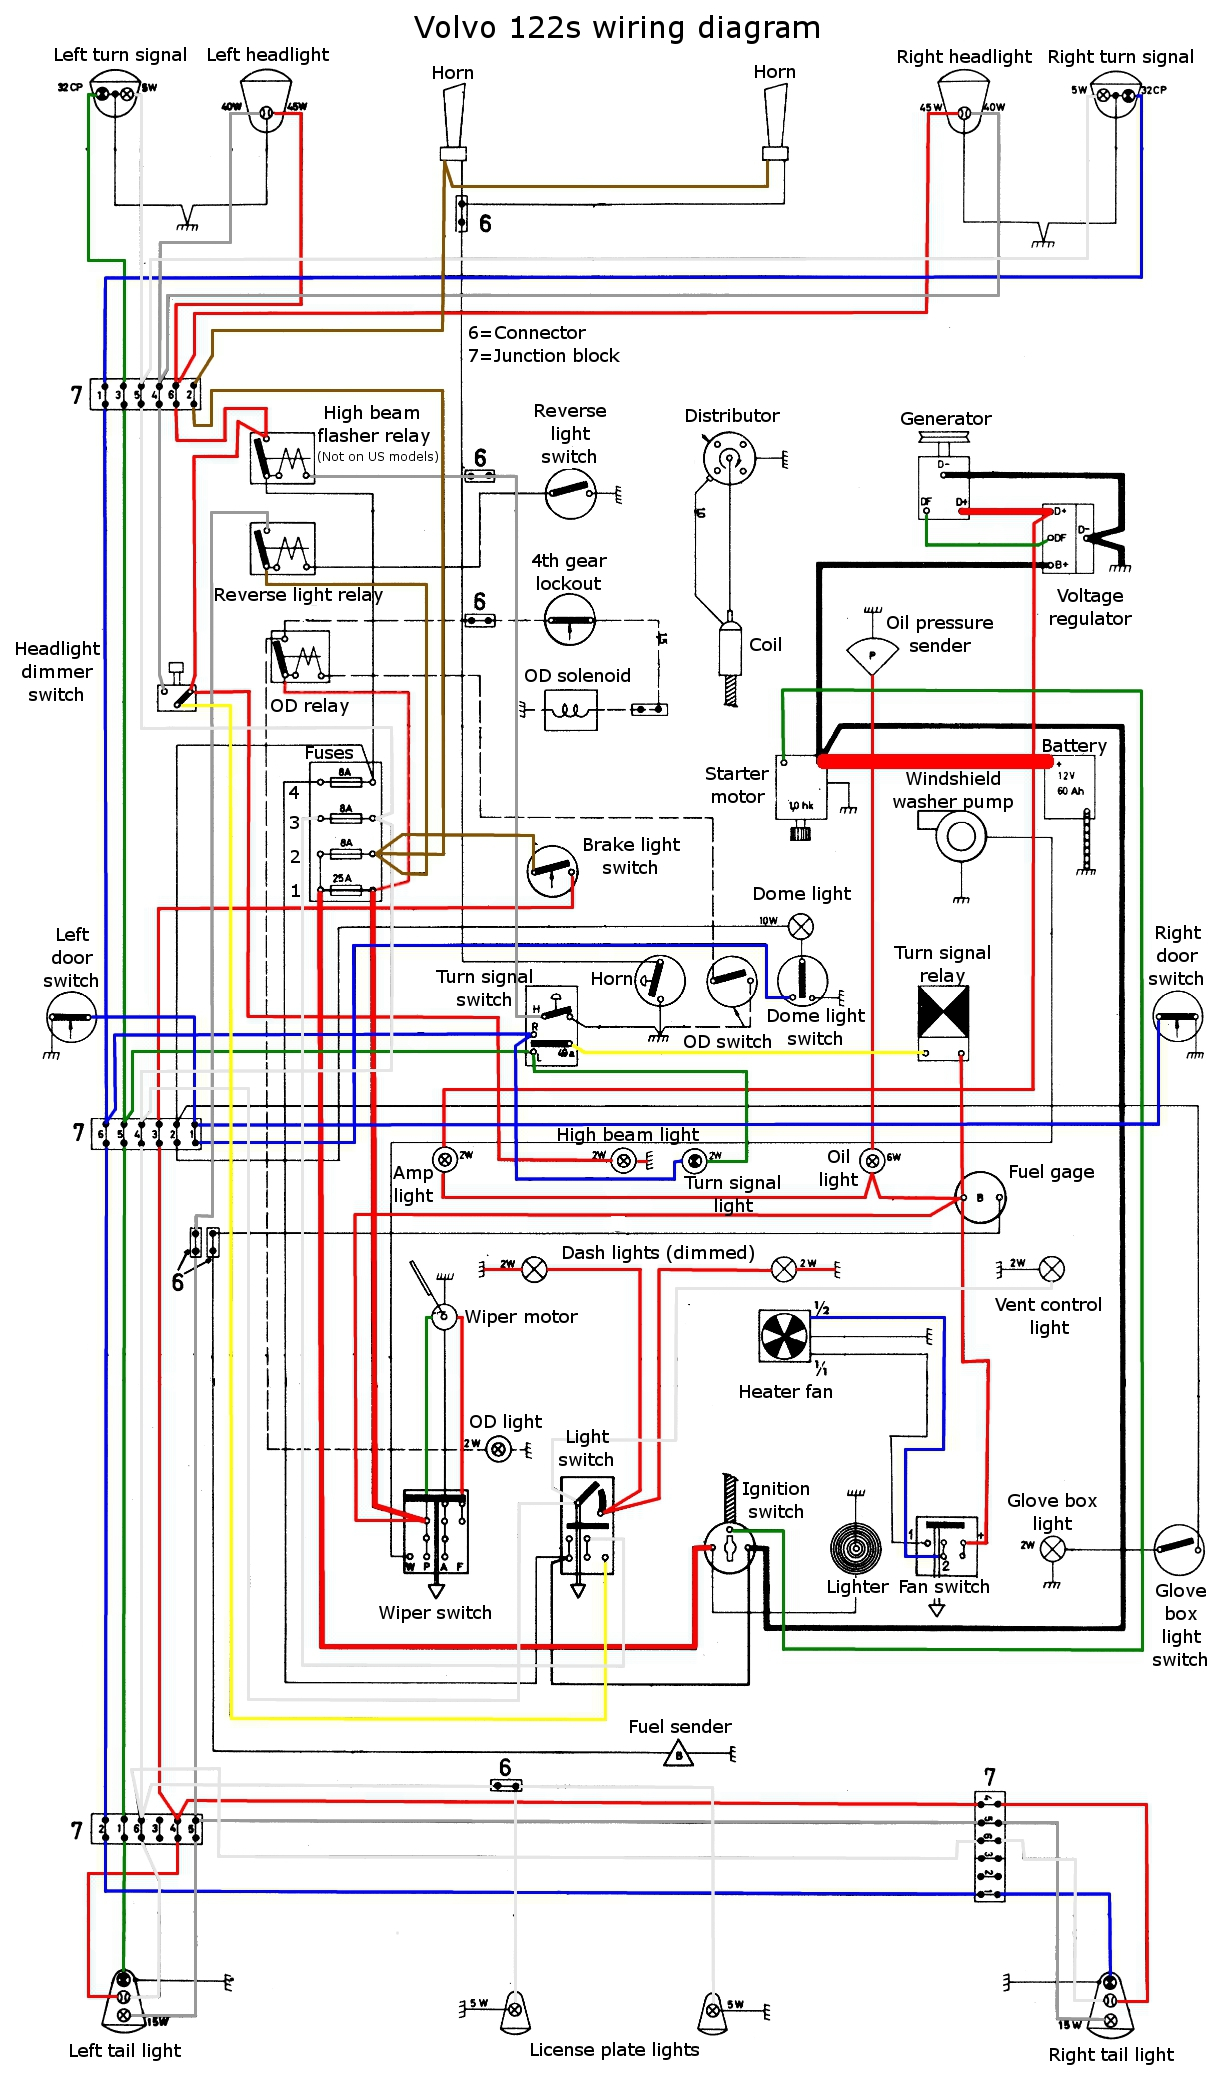 122 wiring diagram color wiring gremlins Volvo 240 Wiring Harness Routing at pacquiaovsvargaslive.co